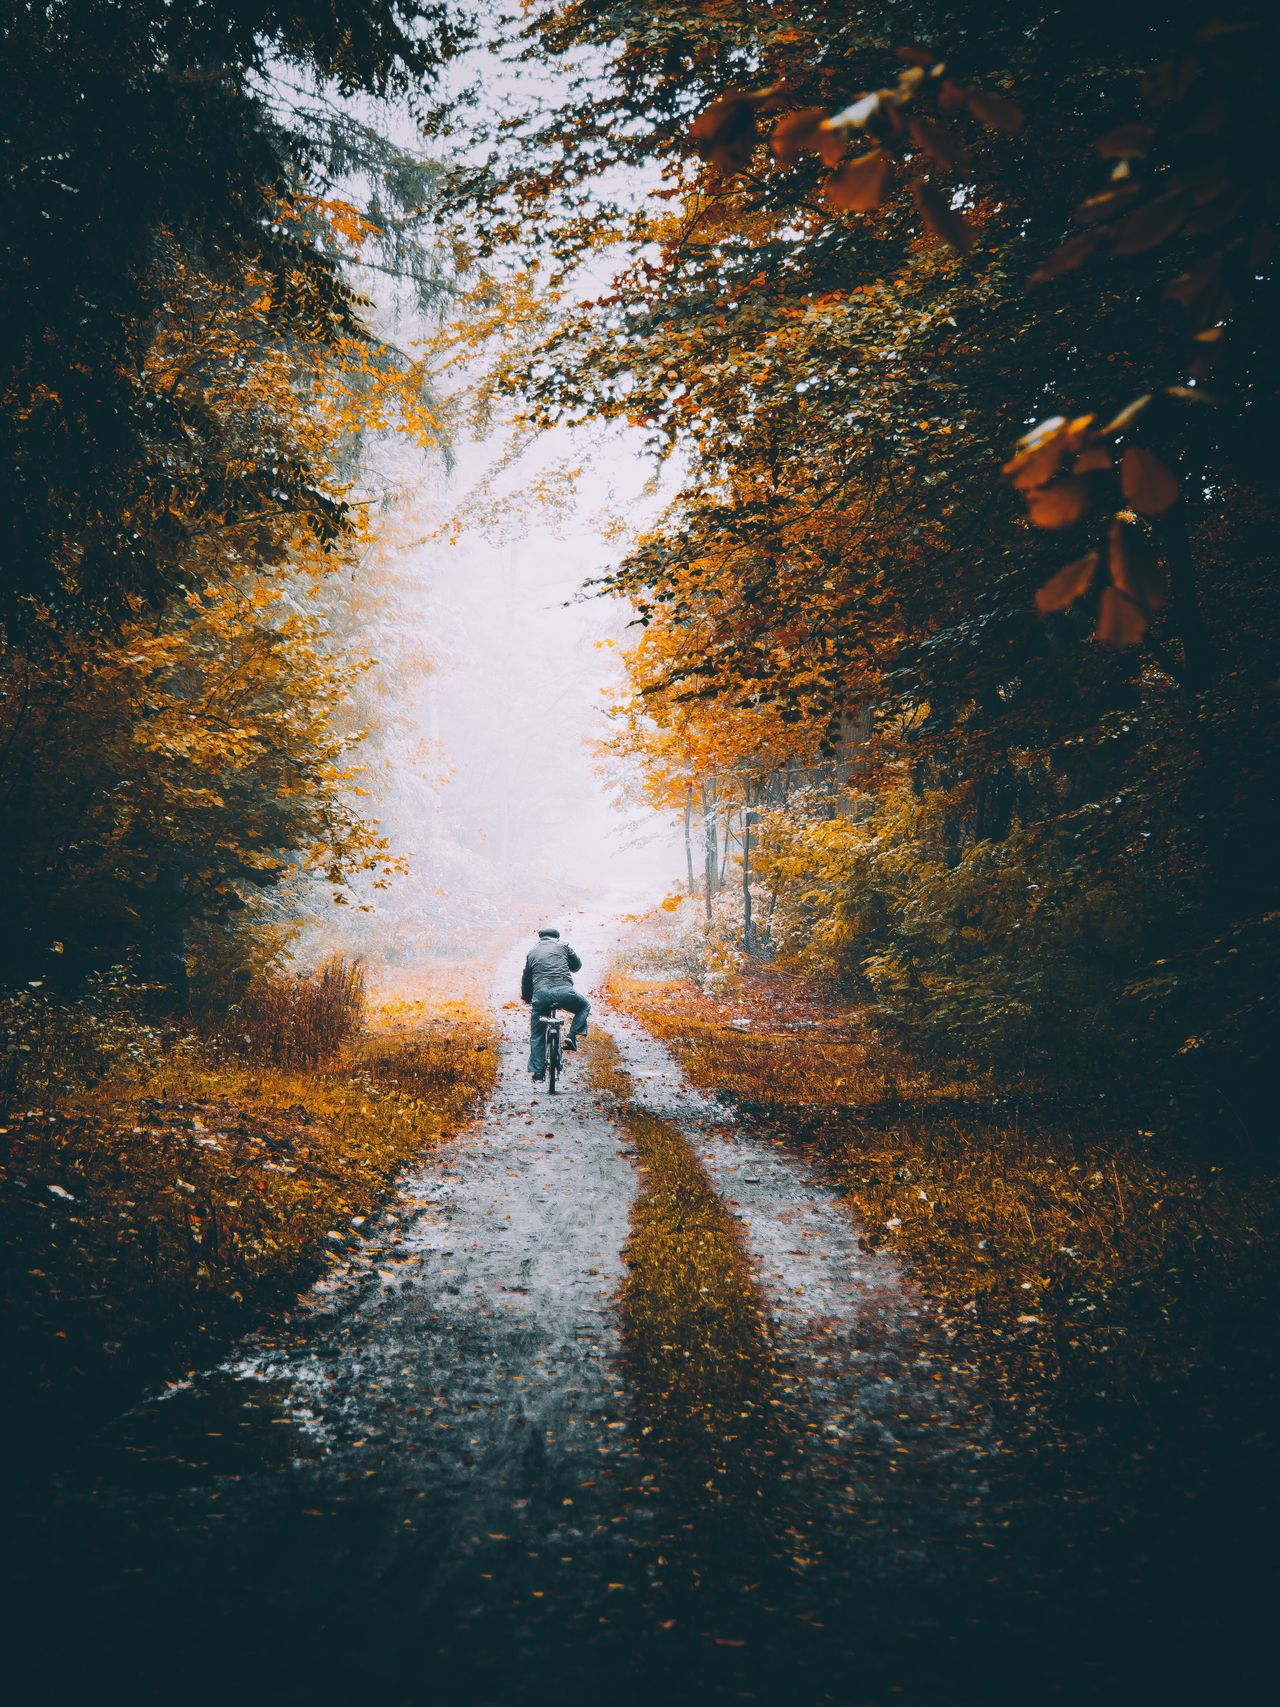 CyclingUnites Water Tree The Way Forward Autumn Full Length Two People Real People Outdoors Nature Rear View Scenics Men Beauty In Nature Pets Day Vertical People Adult The Week On EyeEm